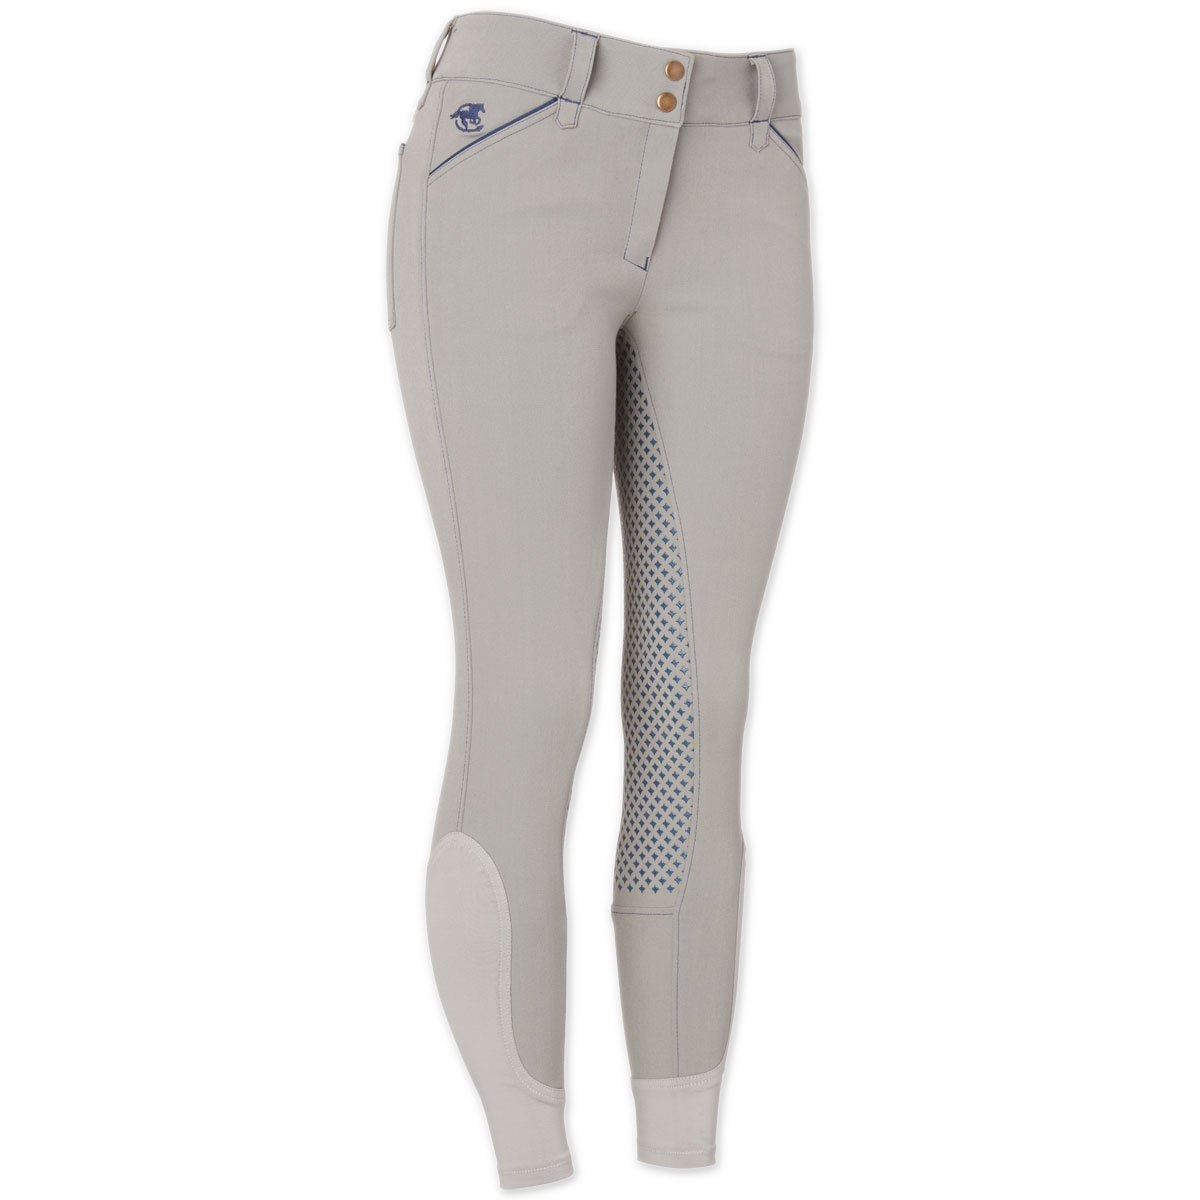 Piper Breeches by SmartPak - Silicone Grip Full Seat